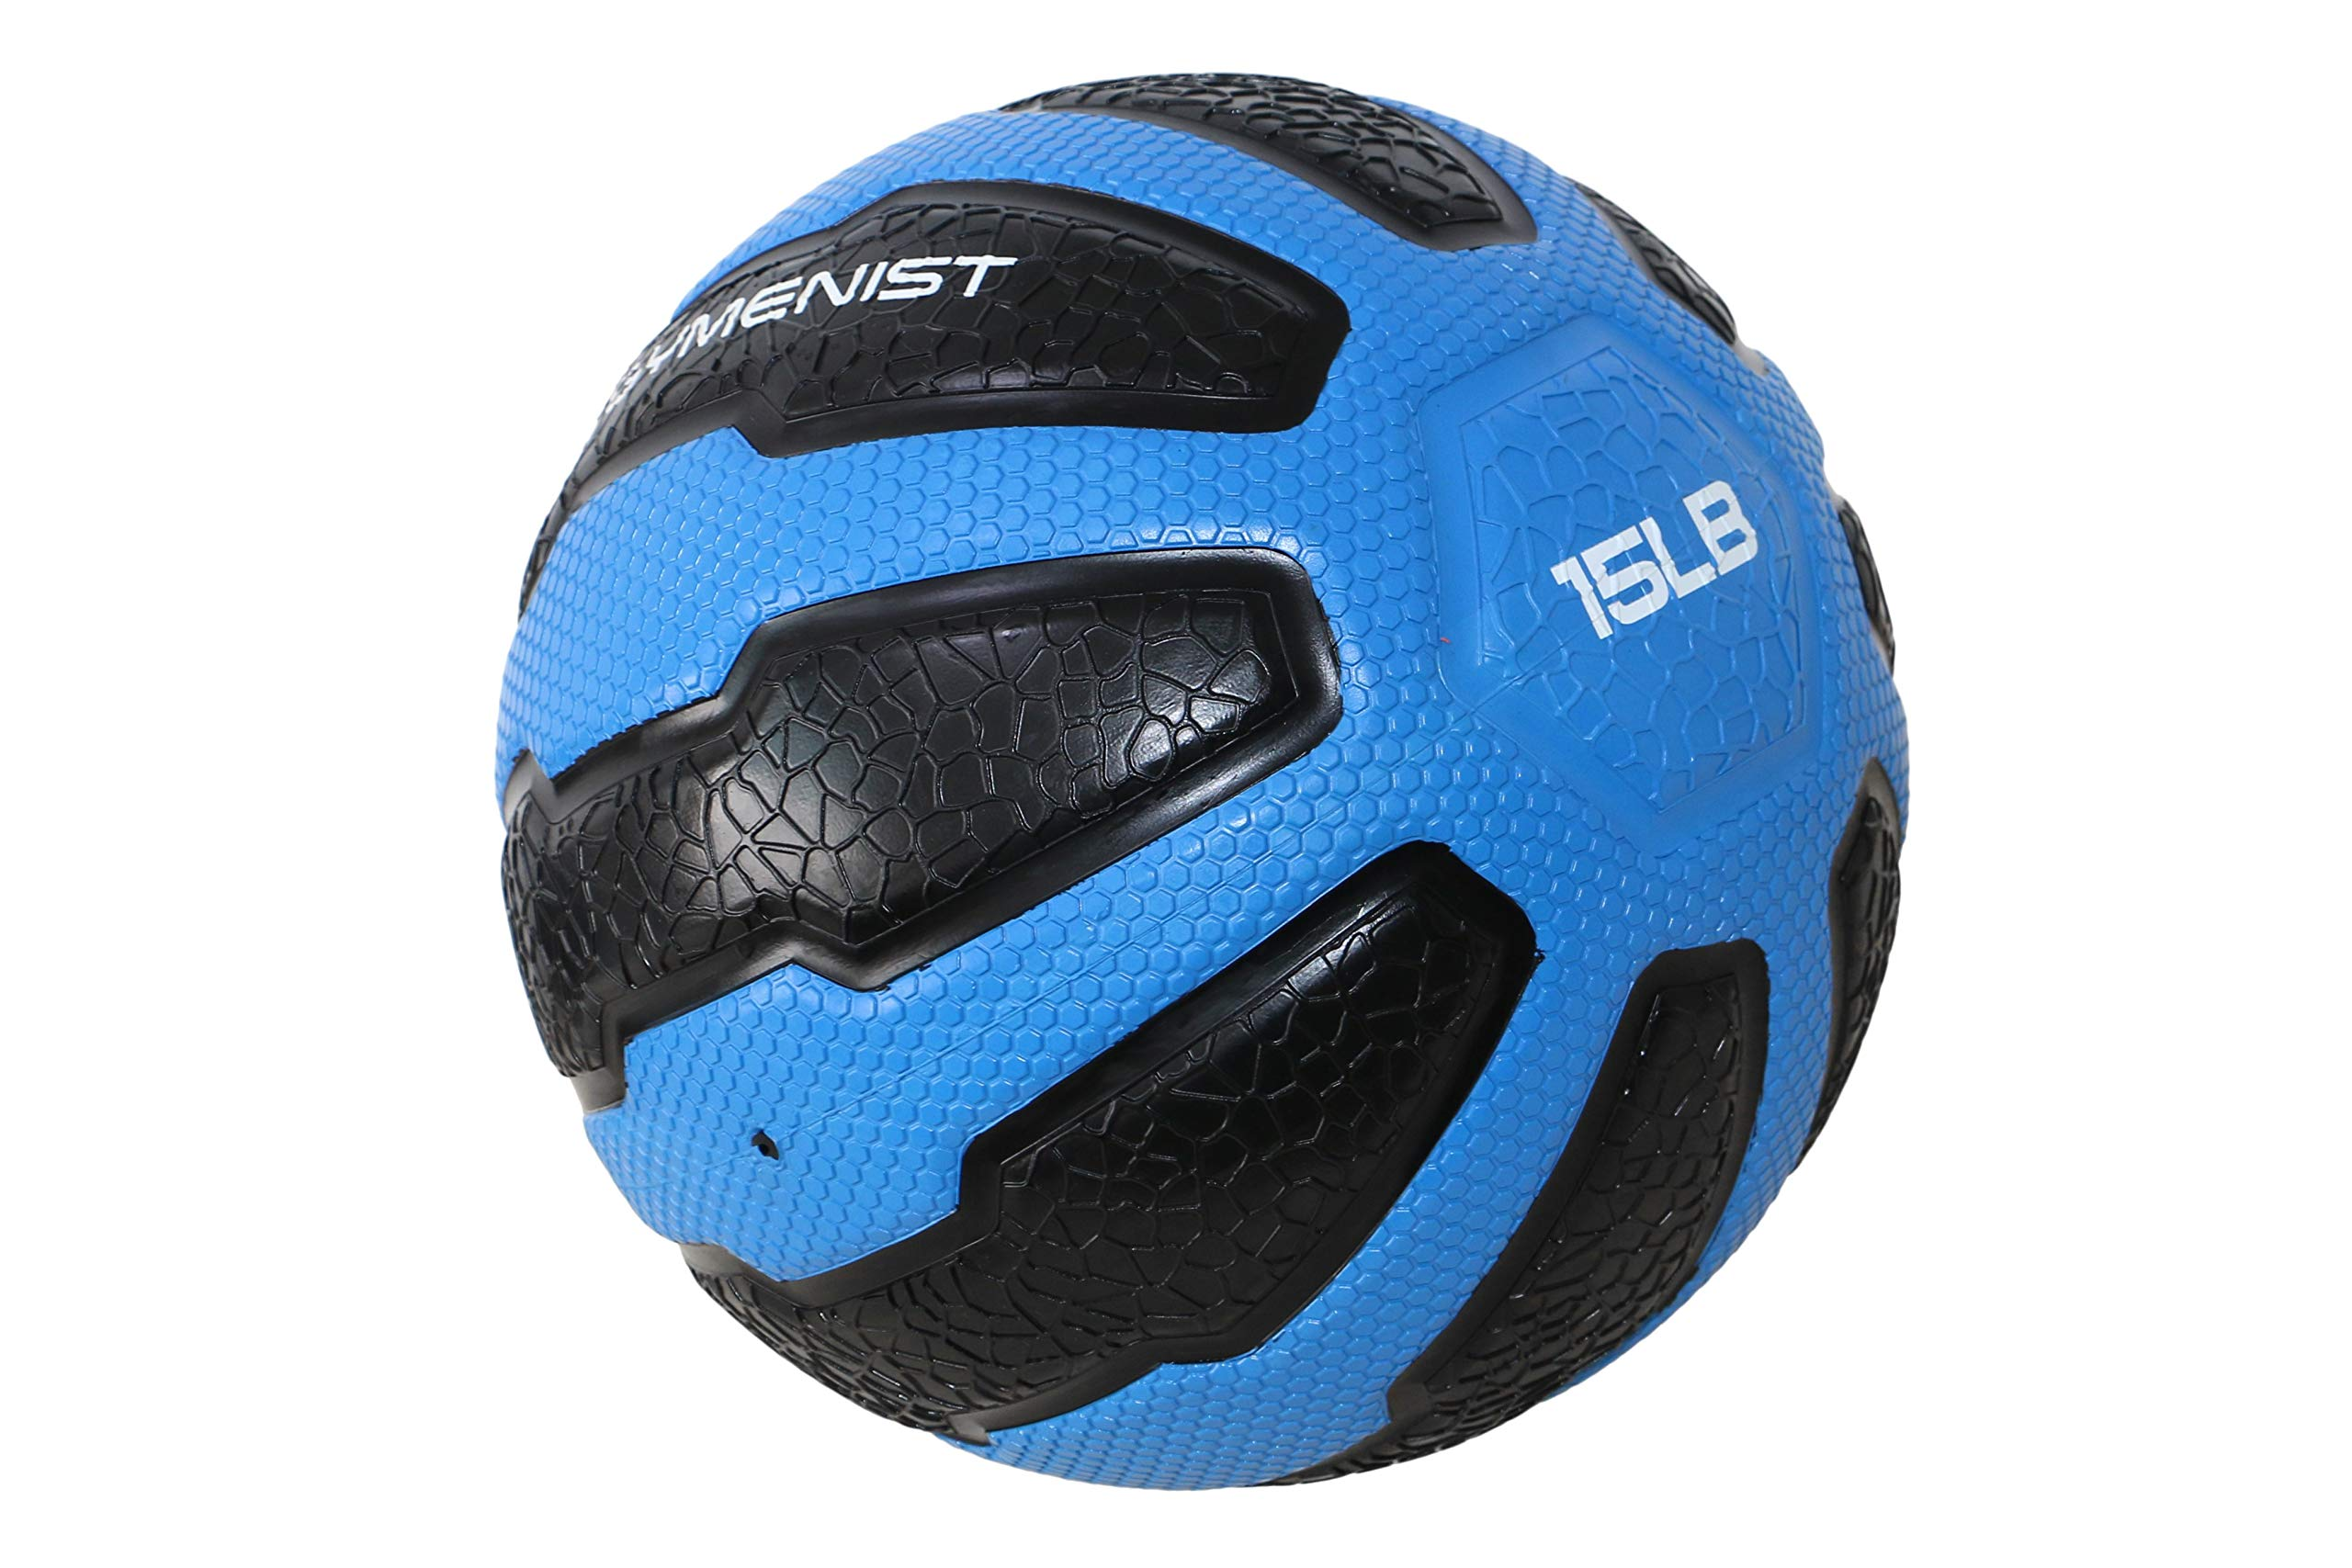 GYMENIST Rubber Medicine Ball with Textured Grip, Available in 9 Sizes, 2-20 LB, Weighted Fitness Balls,Improves Balance and Flexibility - Great for Gym, Exercise, Workouts (15-LB (Blue-Black))